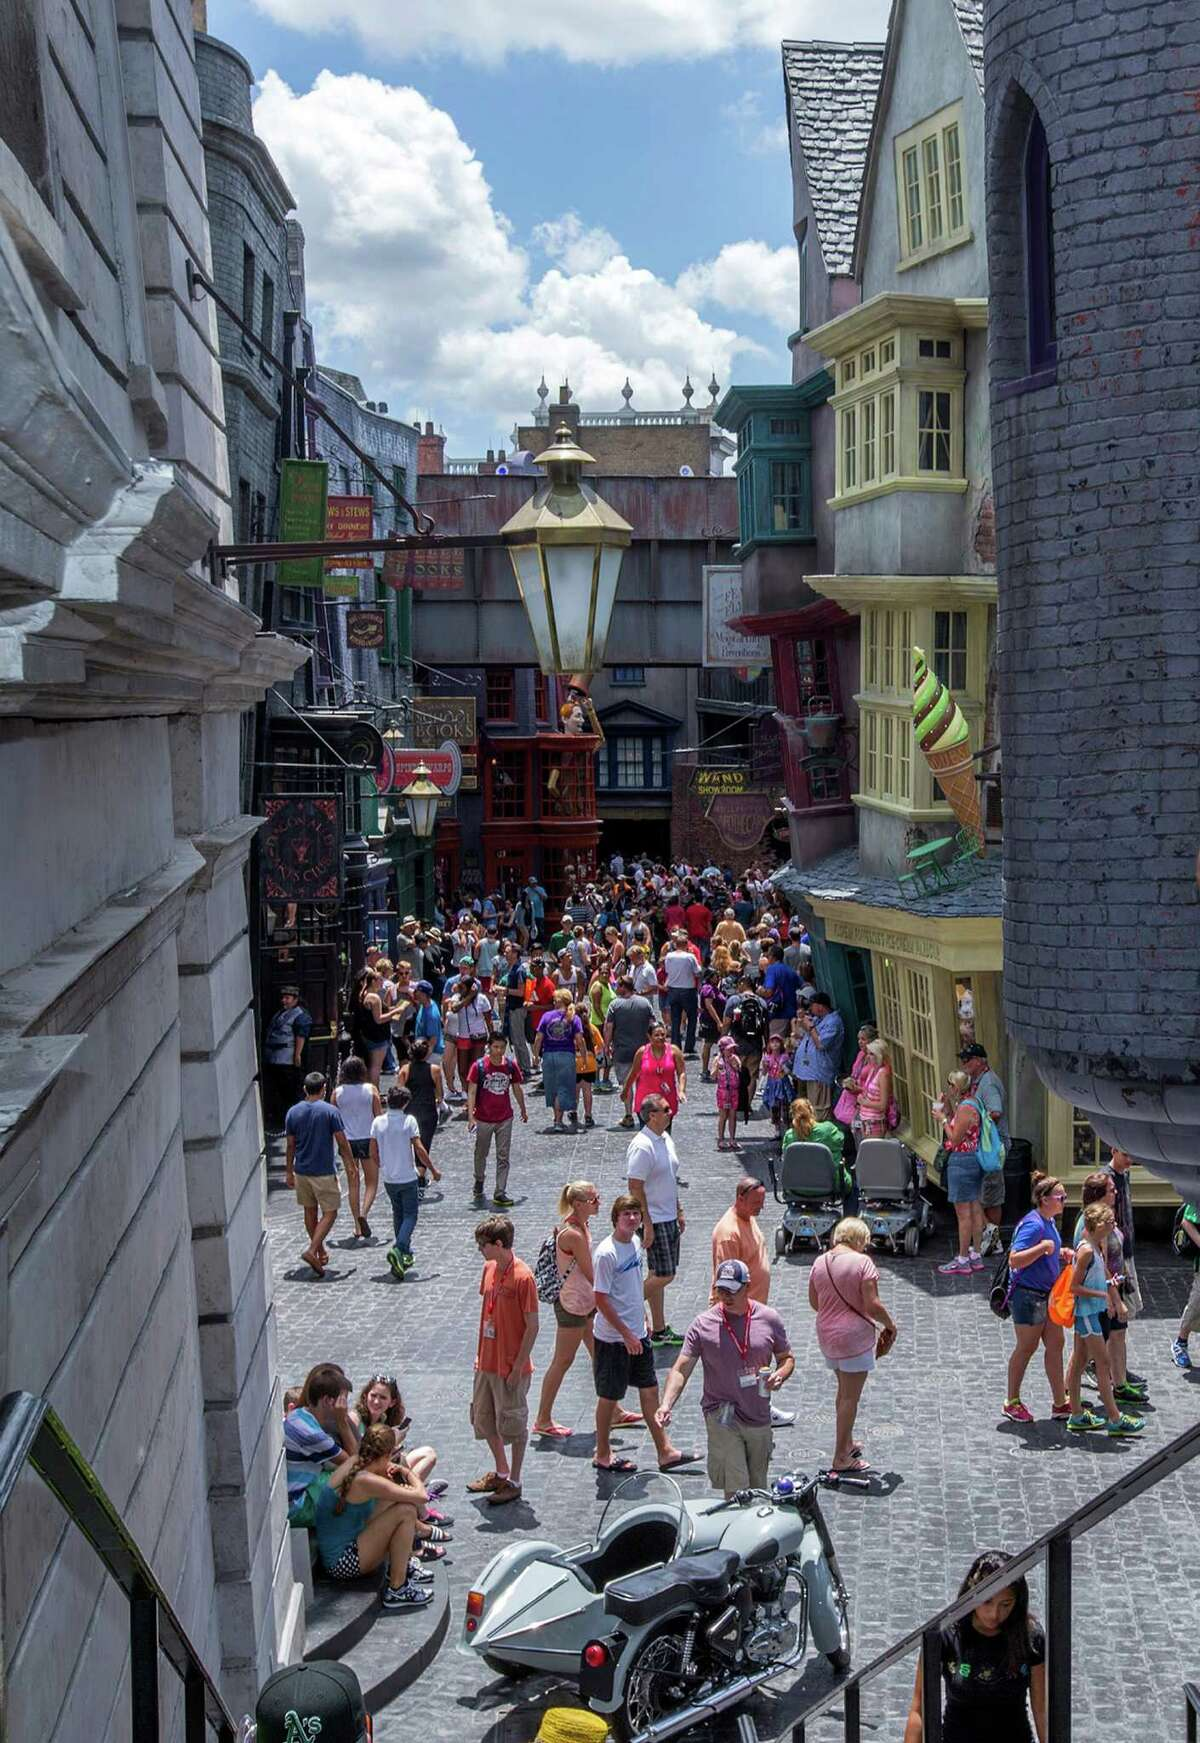 Guests visit Diagon Alley at the Wizarding World of Harry Potter at Universal Orlando, in Orlando, Fla., on Wednesday, July 9, 2014.